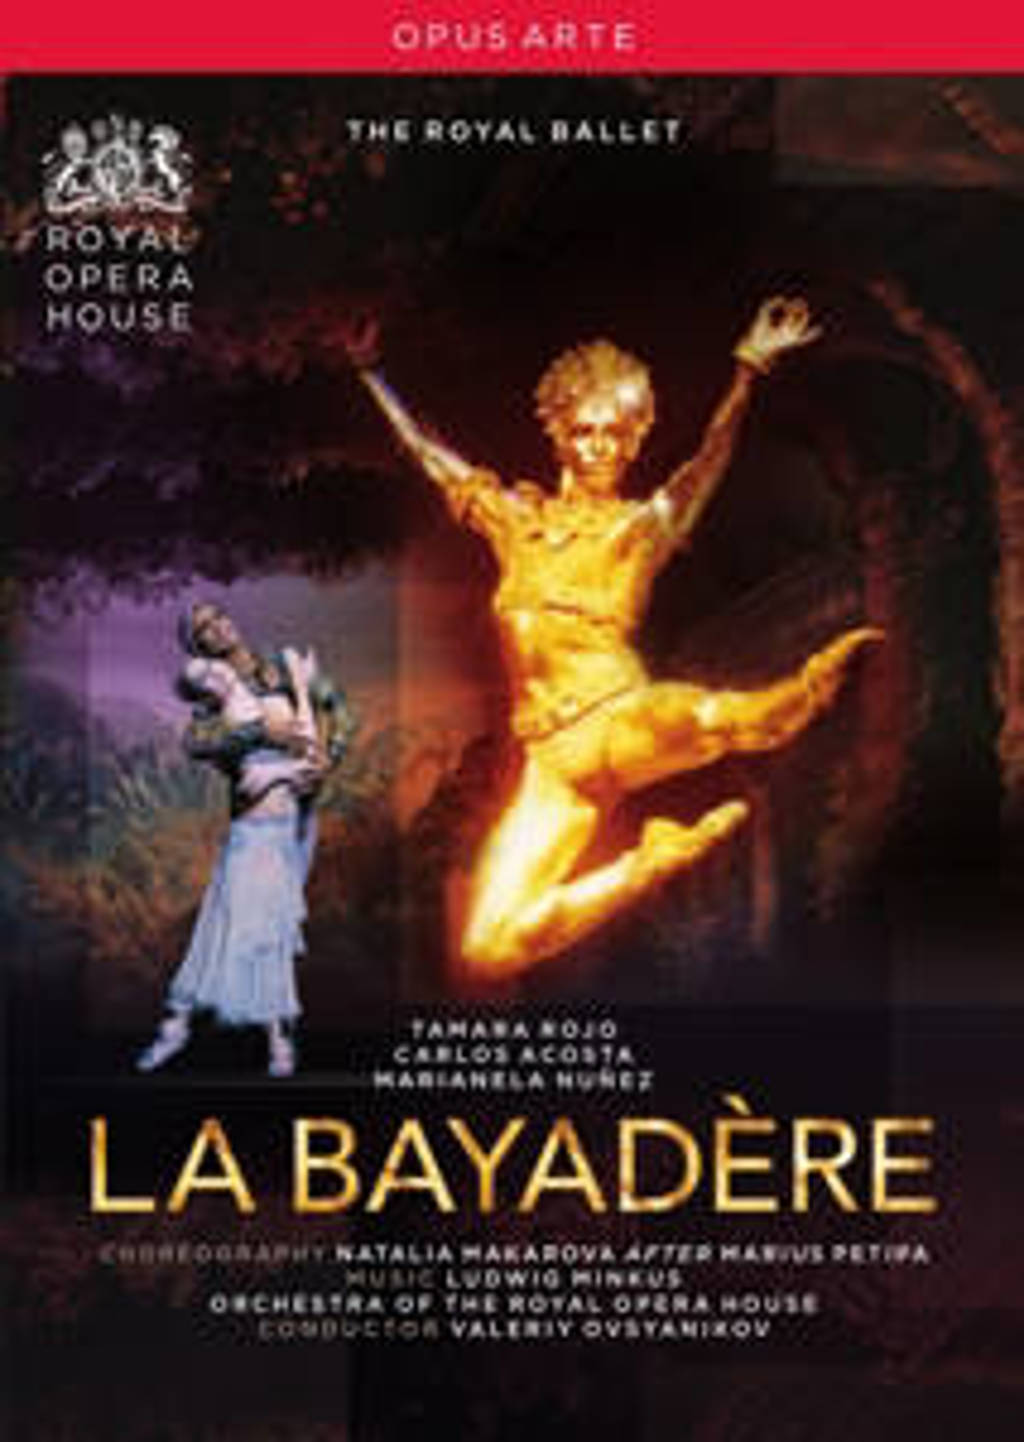 Makarova/The Royal Ballet - La Bayadere (DVD)